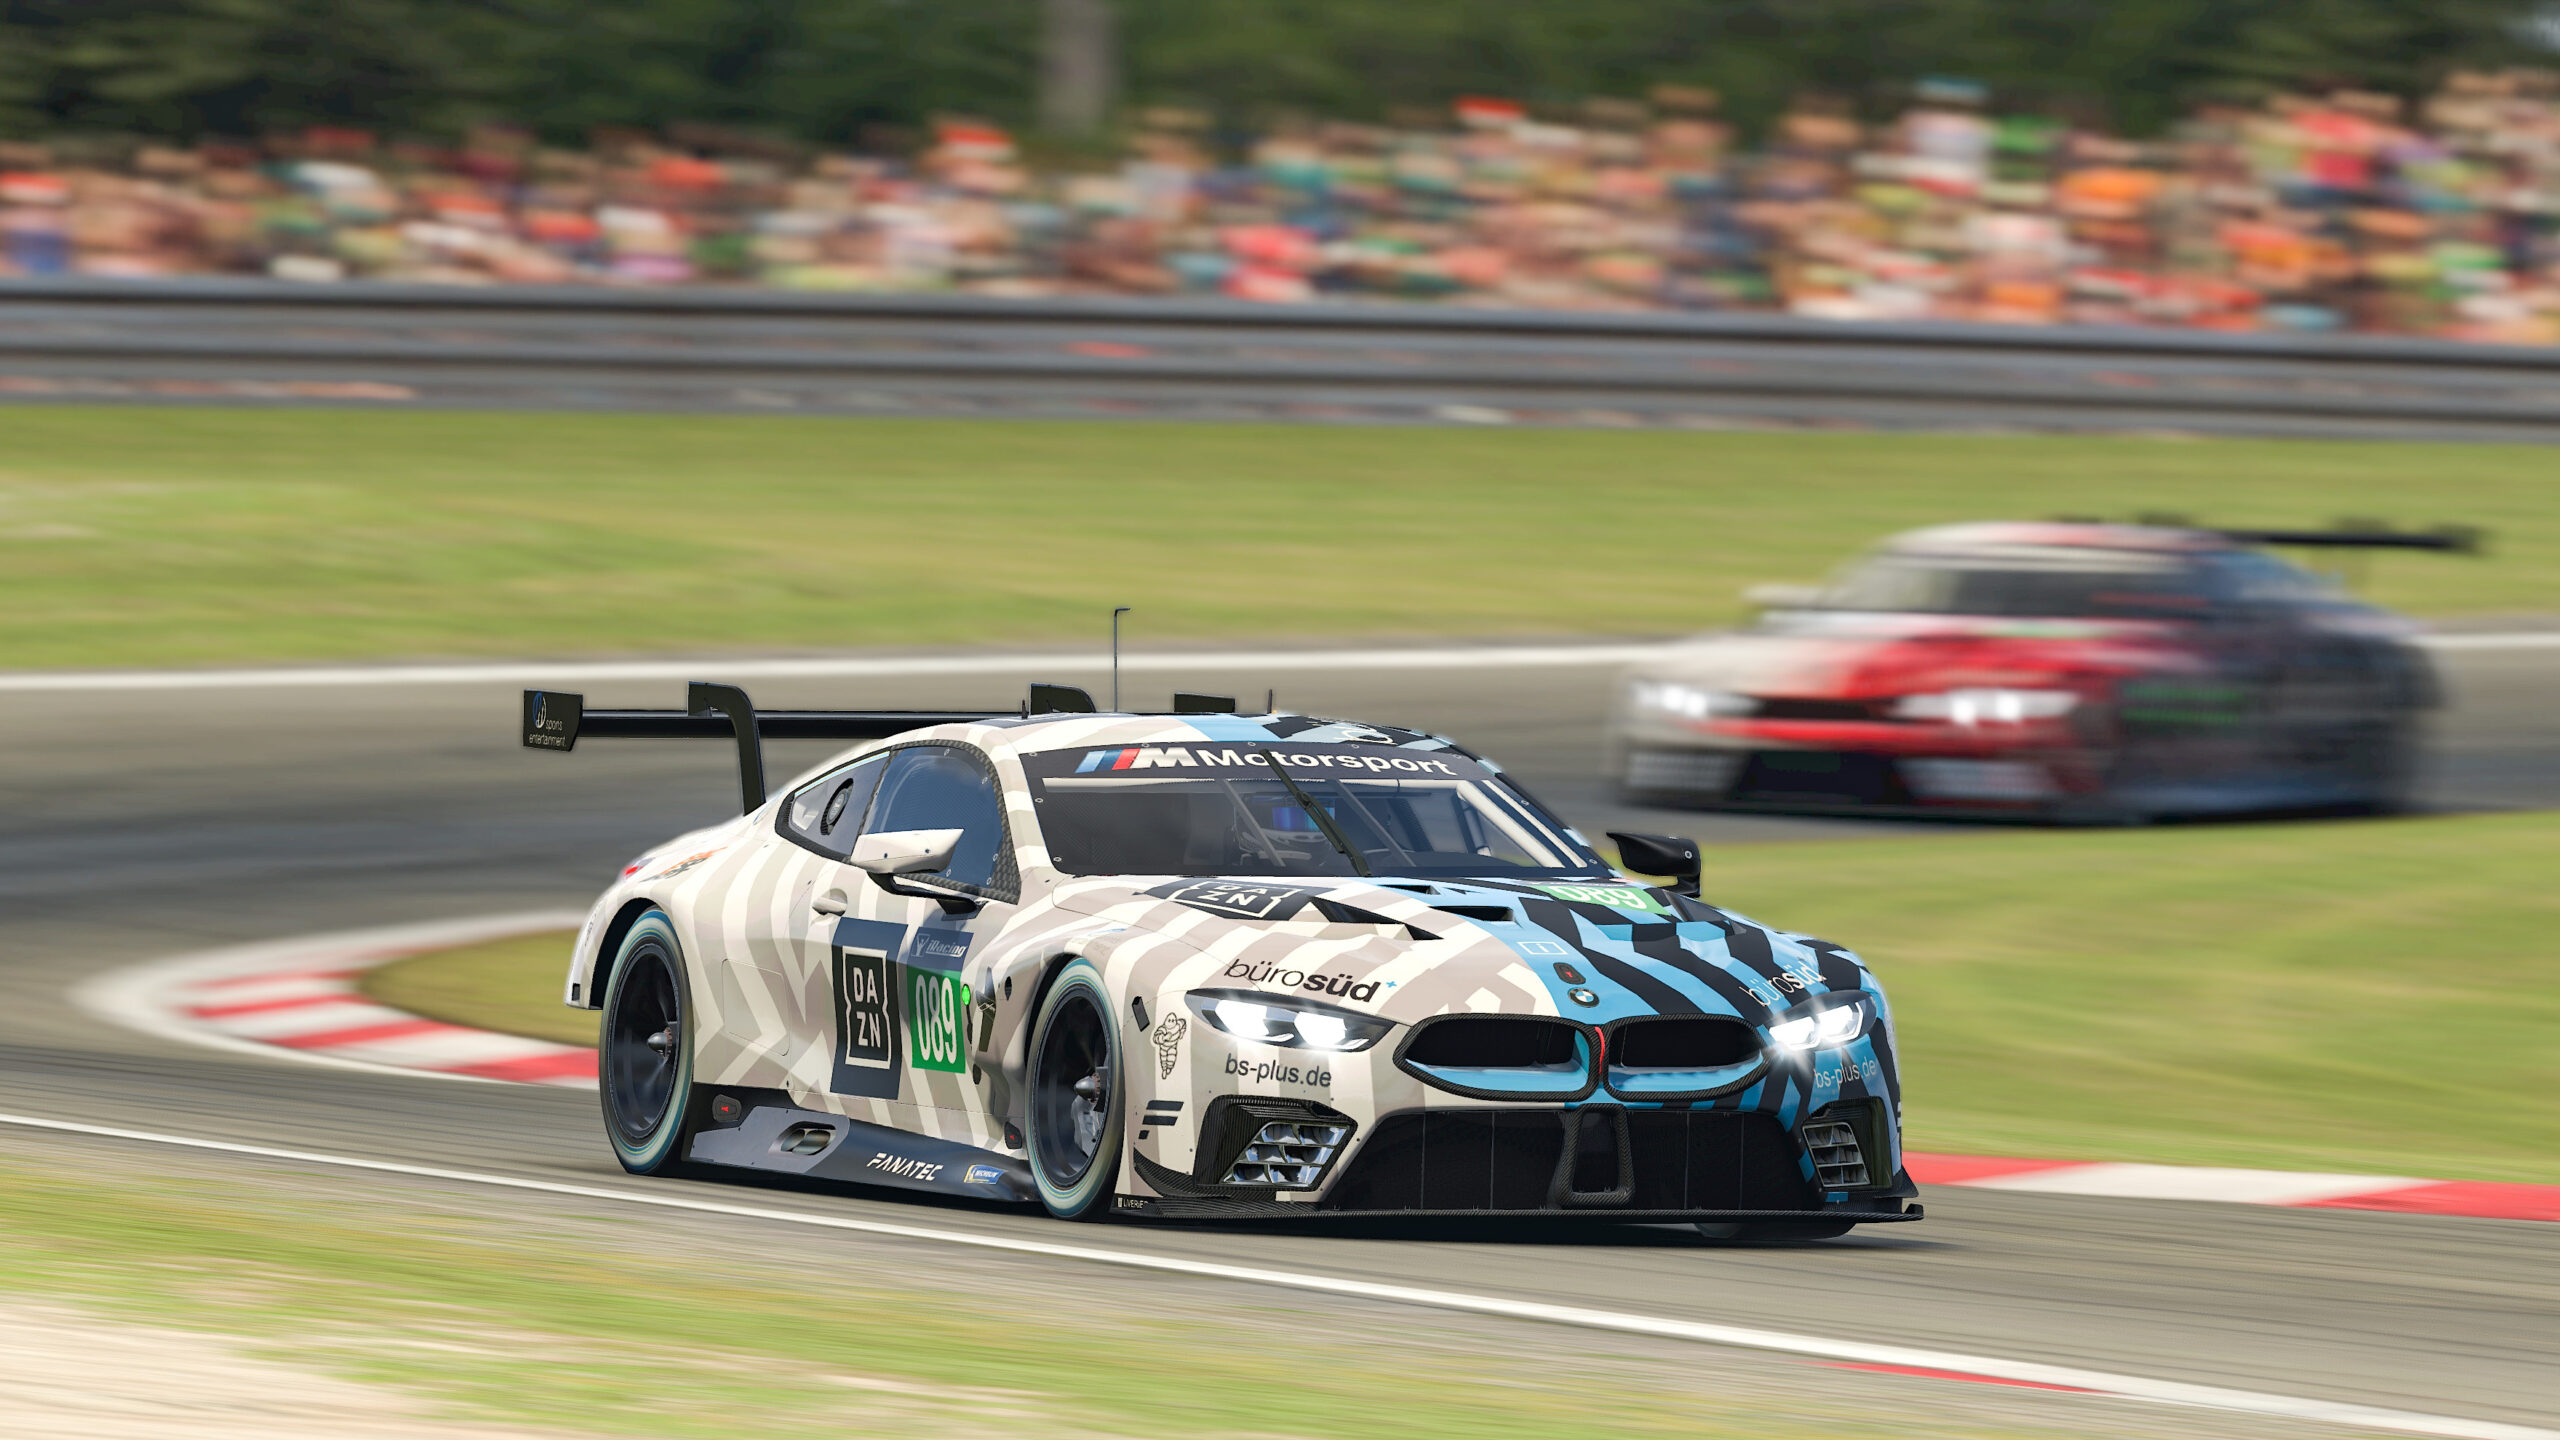 The BMW SIM Live Event now has two new names added to its line-up